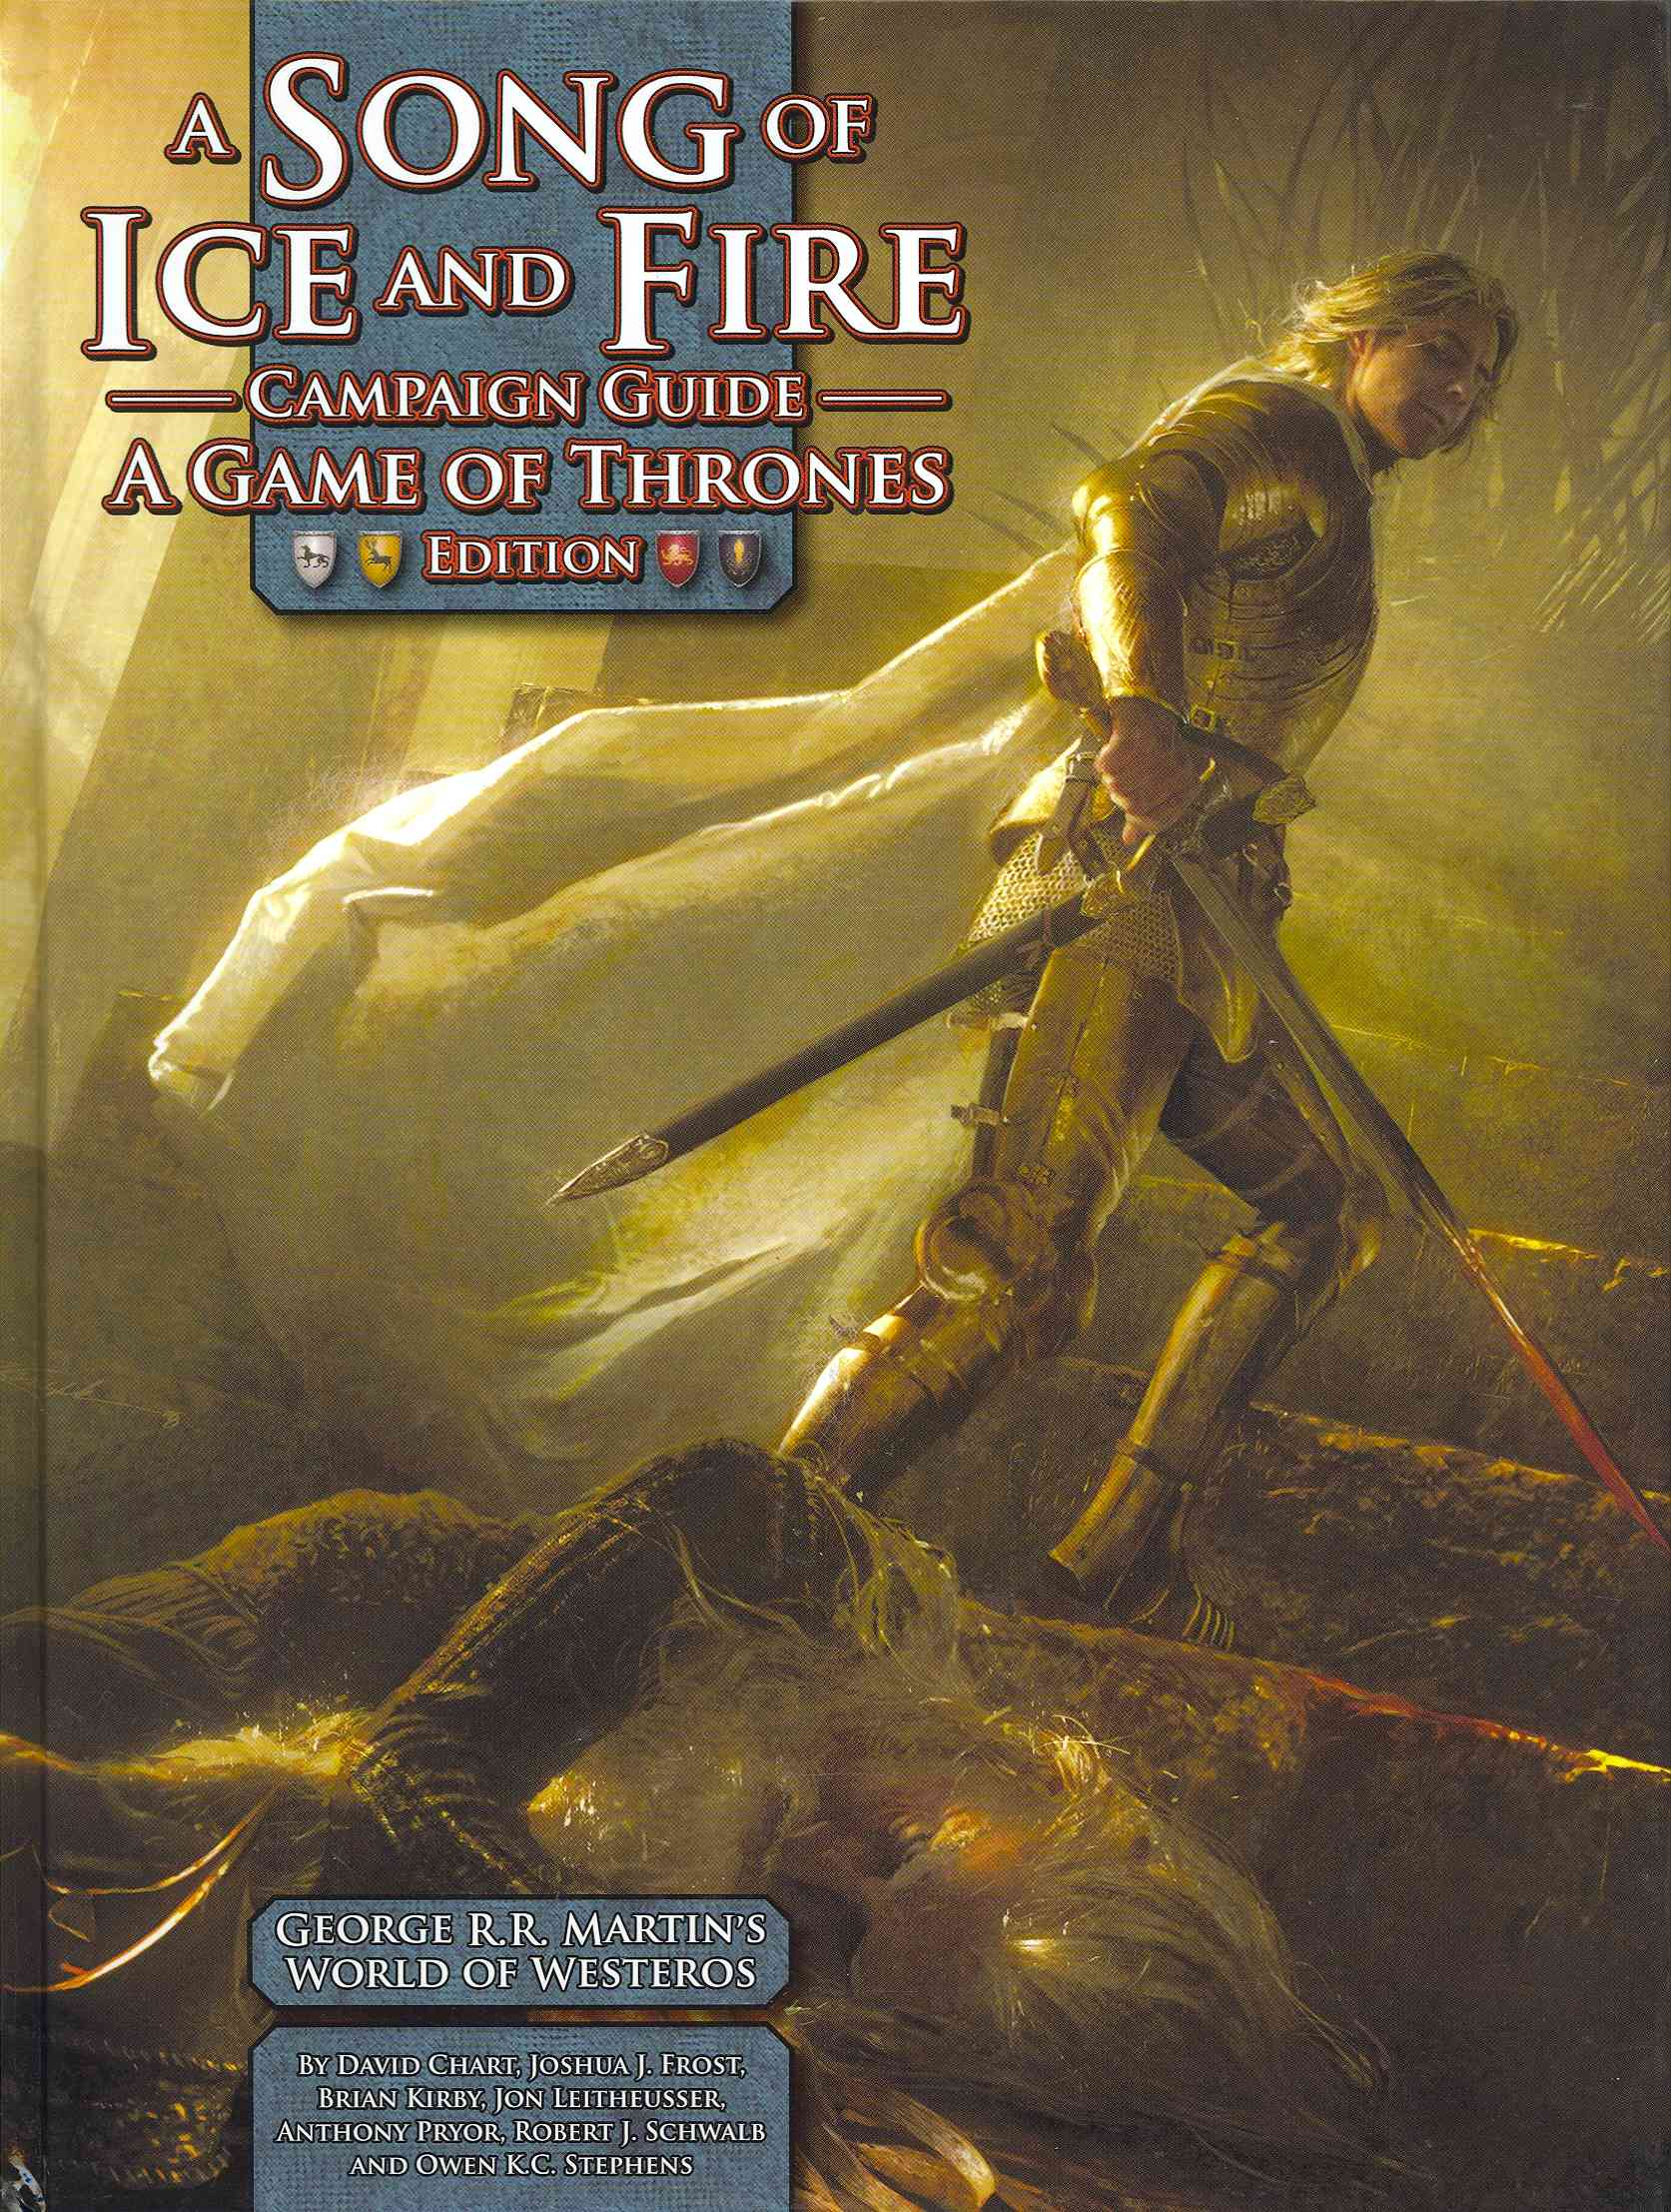 A Song of Ice and Fire Campaign Guide: A Game of Thrones Edition (Hardcover)